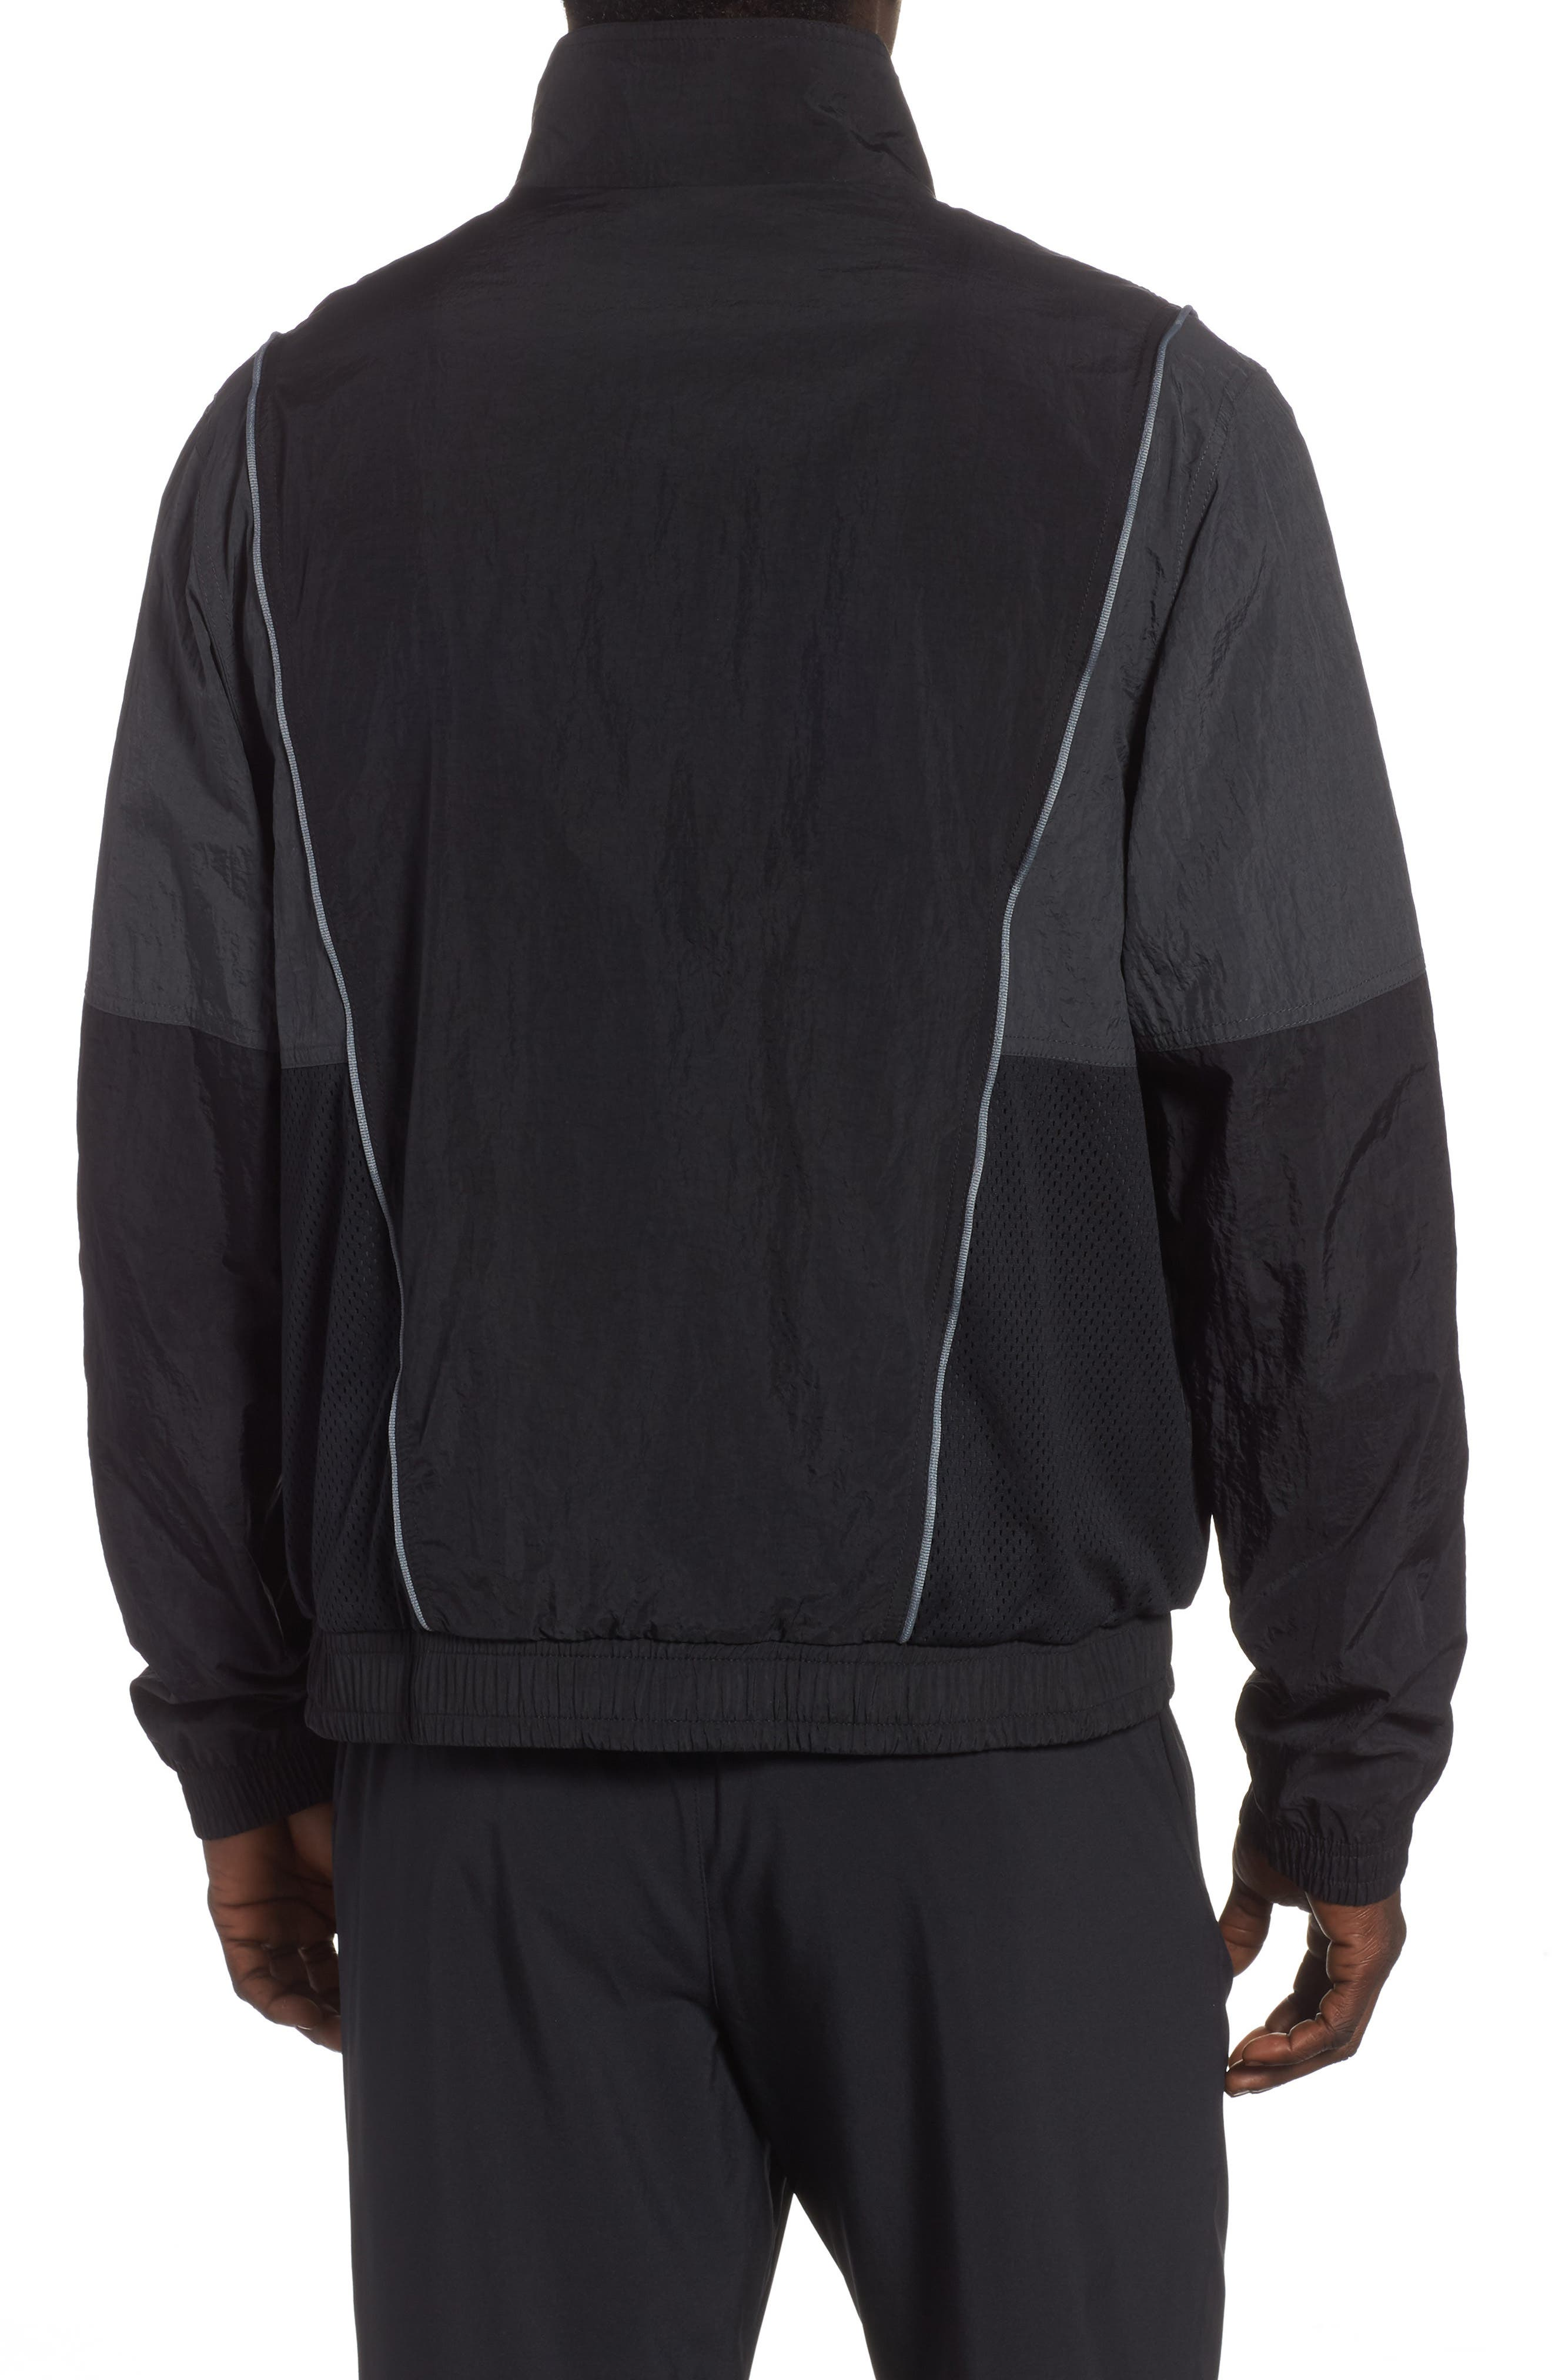 Chicago Bulls Track Jacket,                             Alternate thumbnail 2, color,                             BLACK/ ANTHRACITE/ COOL GREY